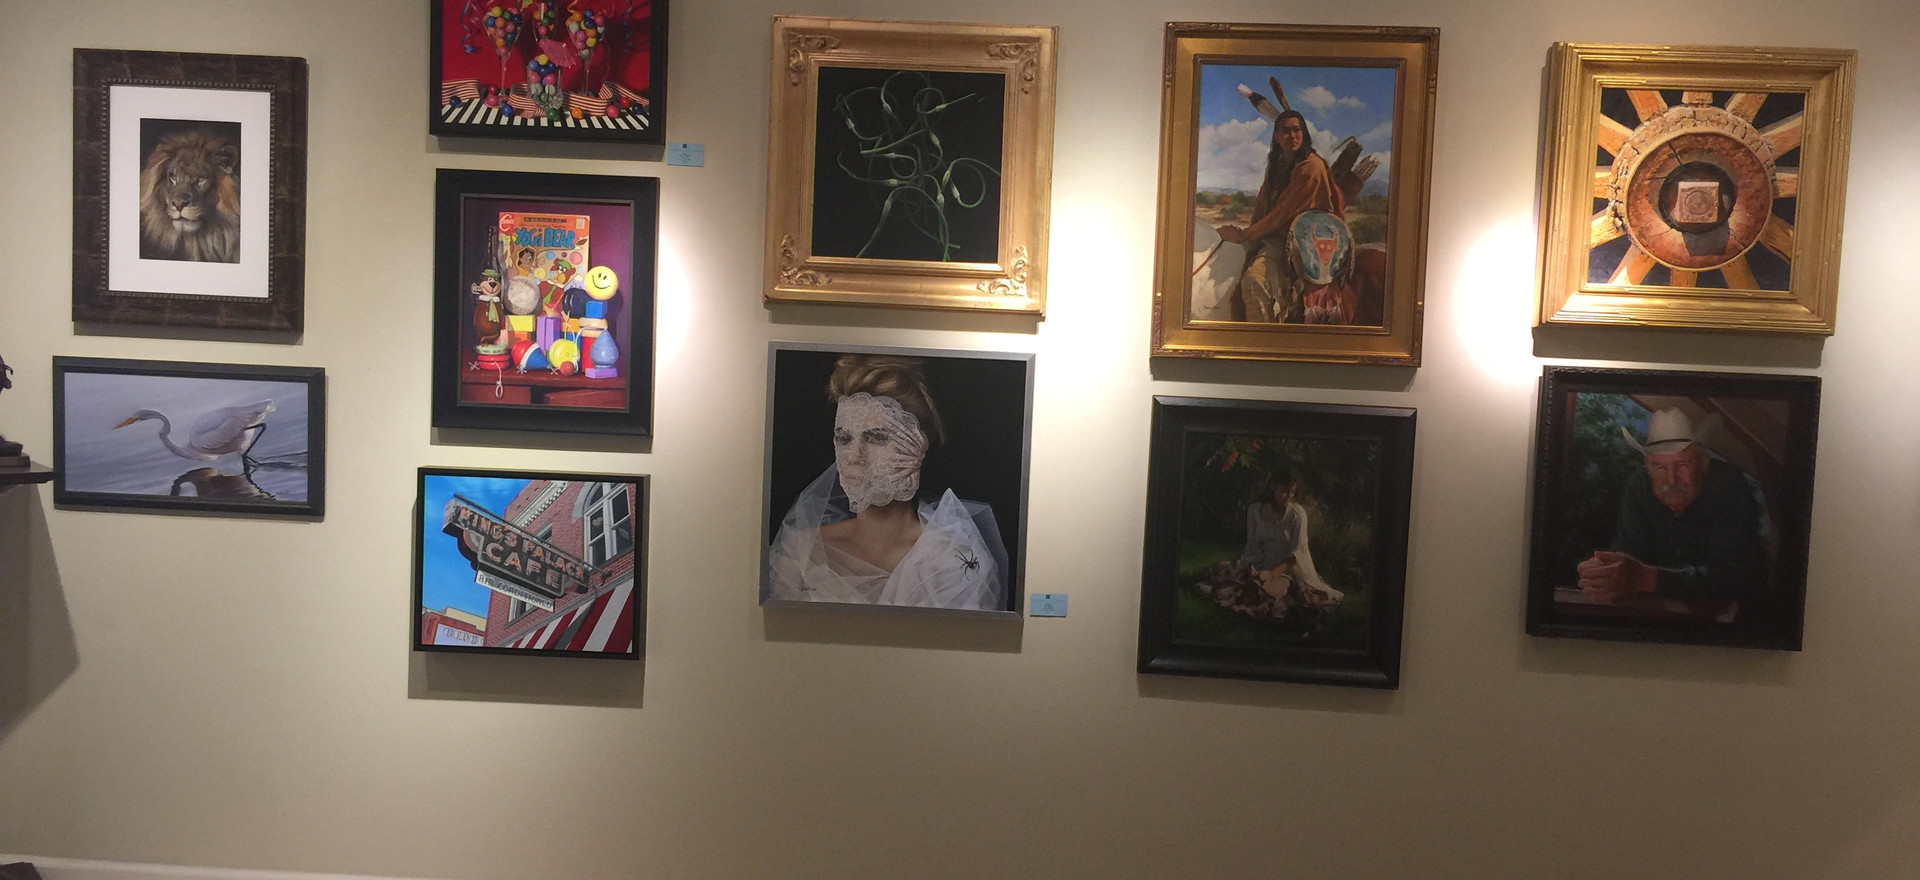 King's Palace in a group show at Marshall Gallery in Scotsdale, AZ